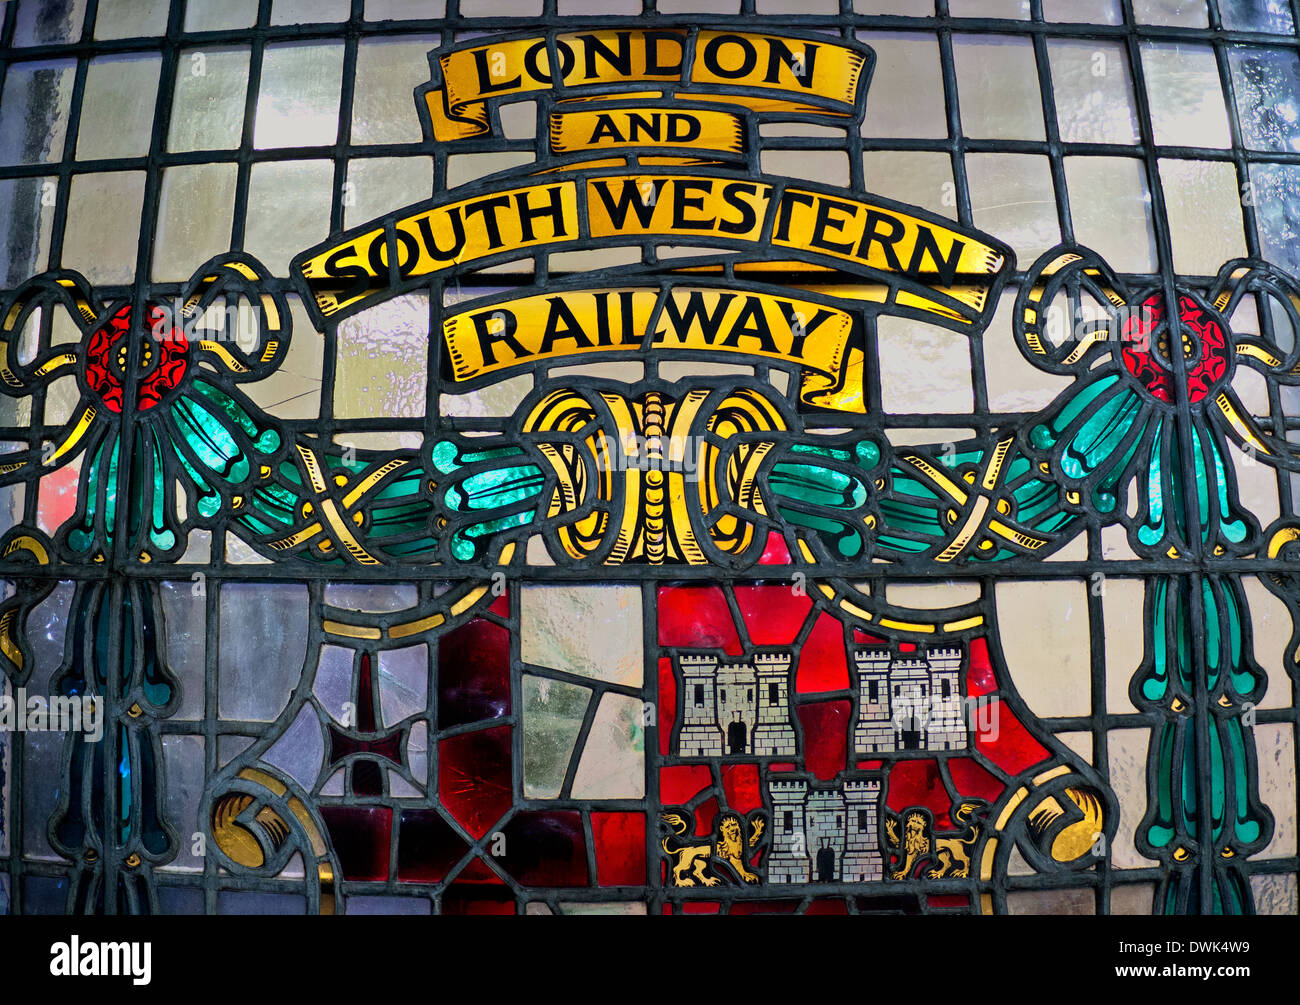 Historic stained glass window at Waterloo Station depicting former independent London and South Western Railway - Stock Image